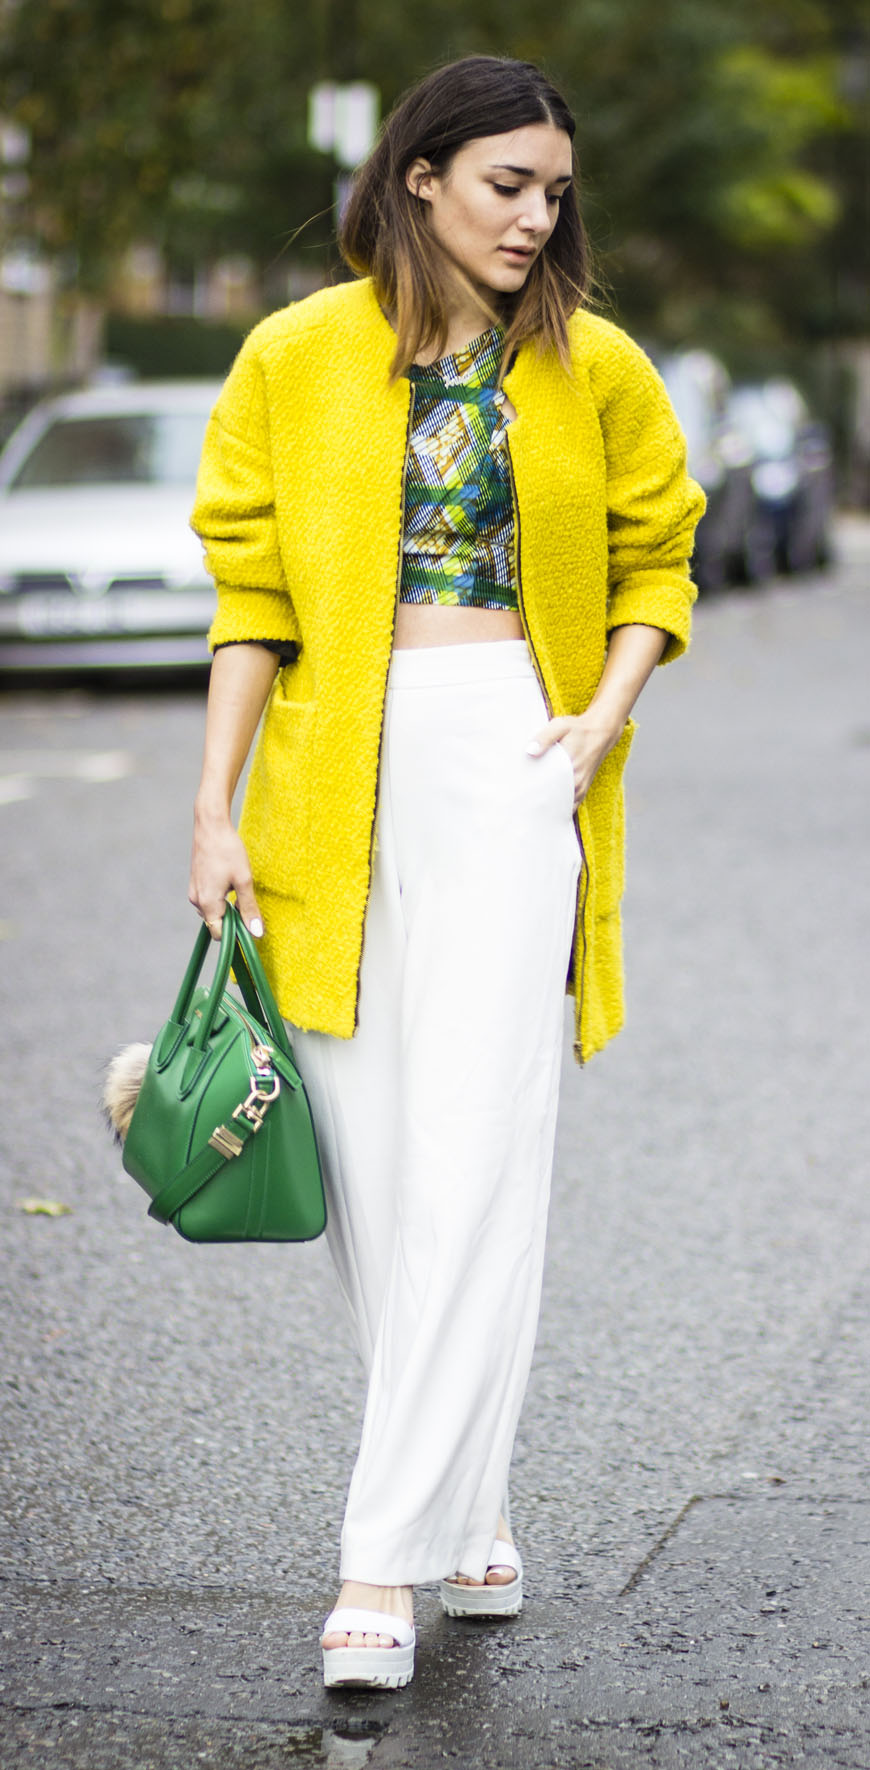 white-wideleg-pants-green-emerald-crop-top-green-bag-white-shoe-sandalw-yellow-jacket-coat-yellow-jacket-bomber-spring-summer-blonde-lunch.jpg